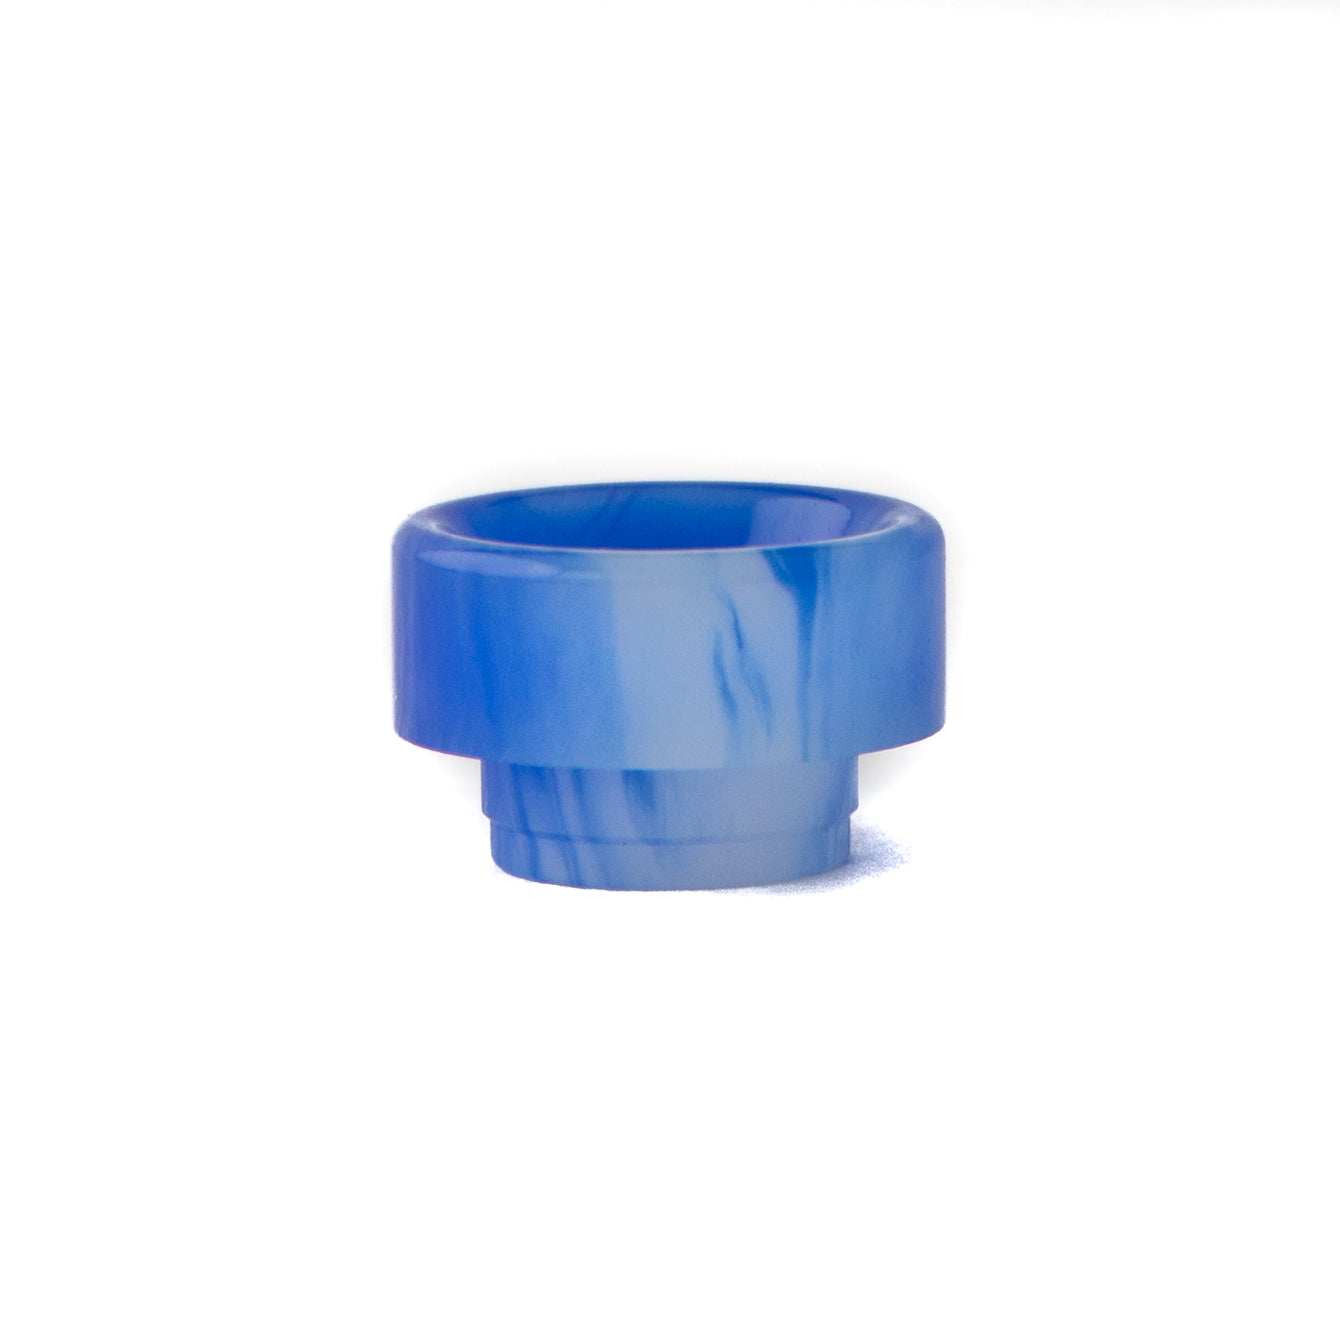 808 Resin Drip Tip - Dark Blue